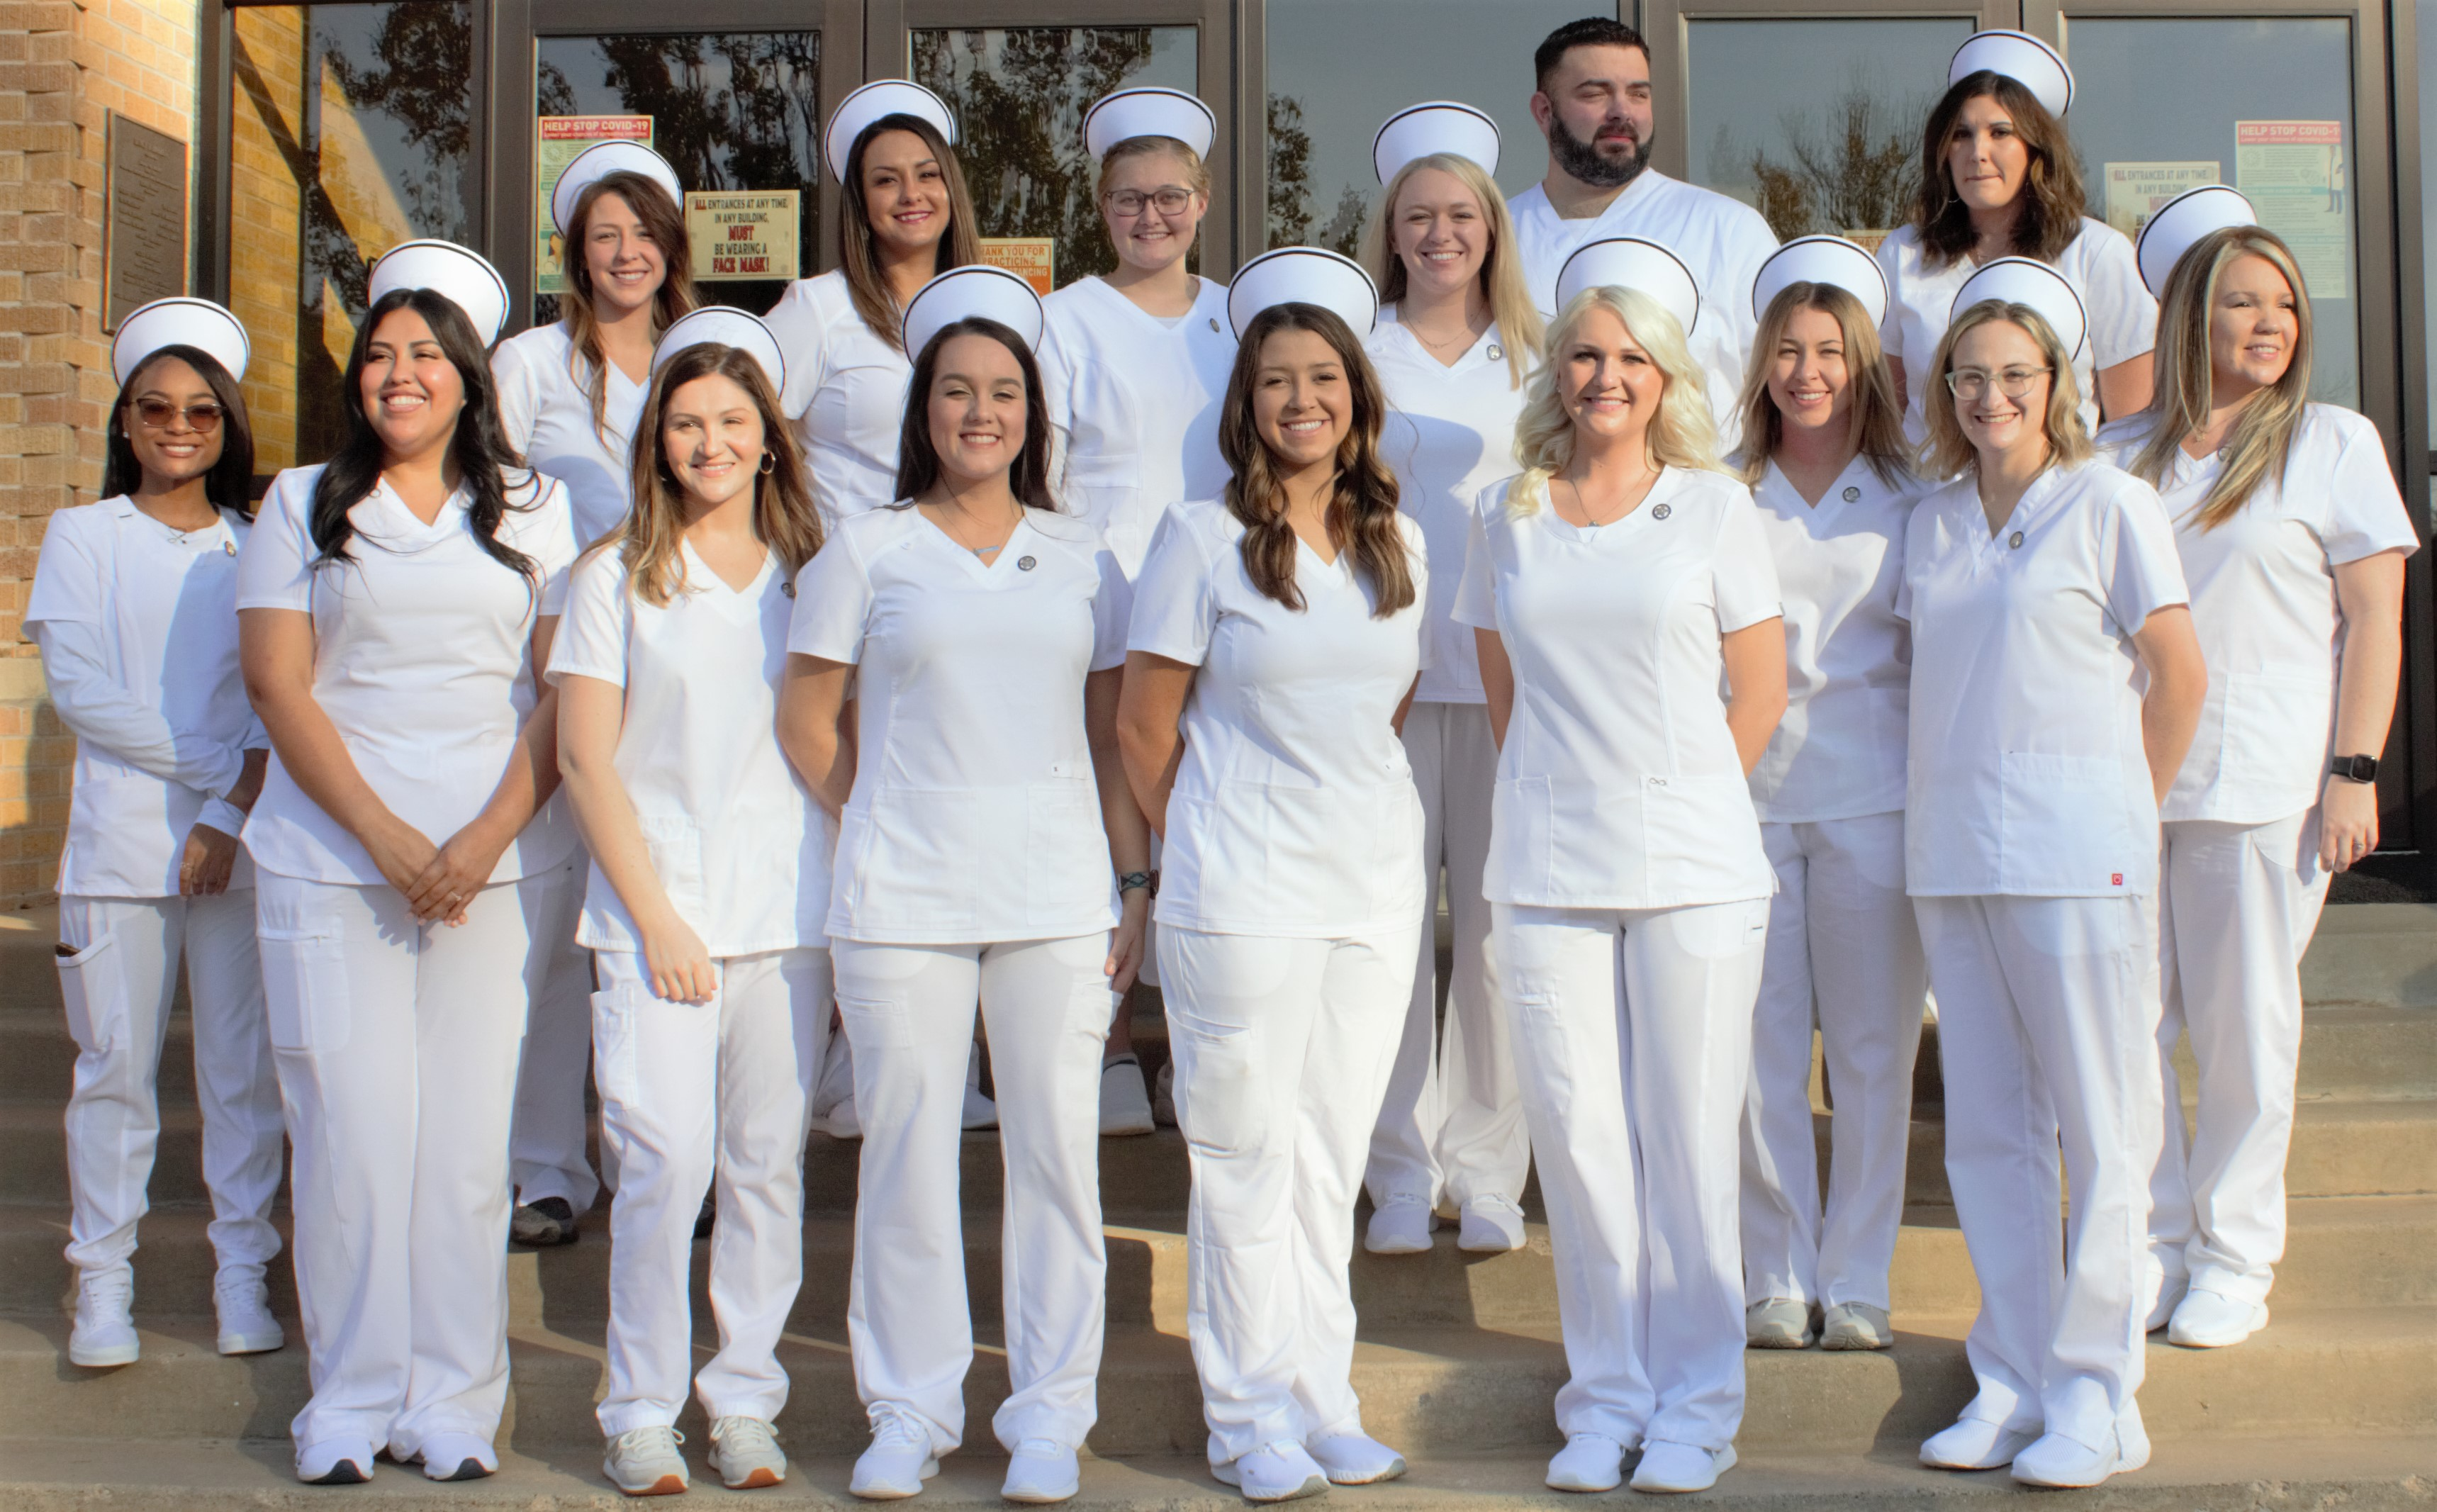 Murray at Mercy graduates first class of nurses